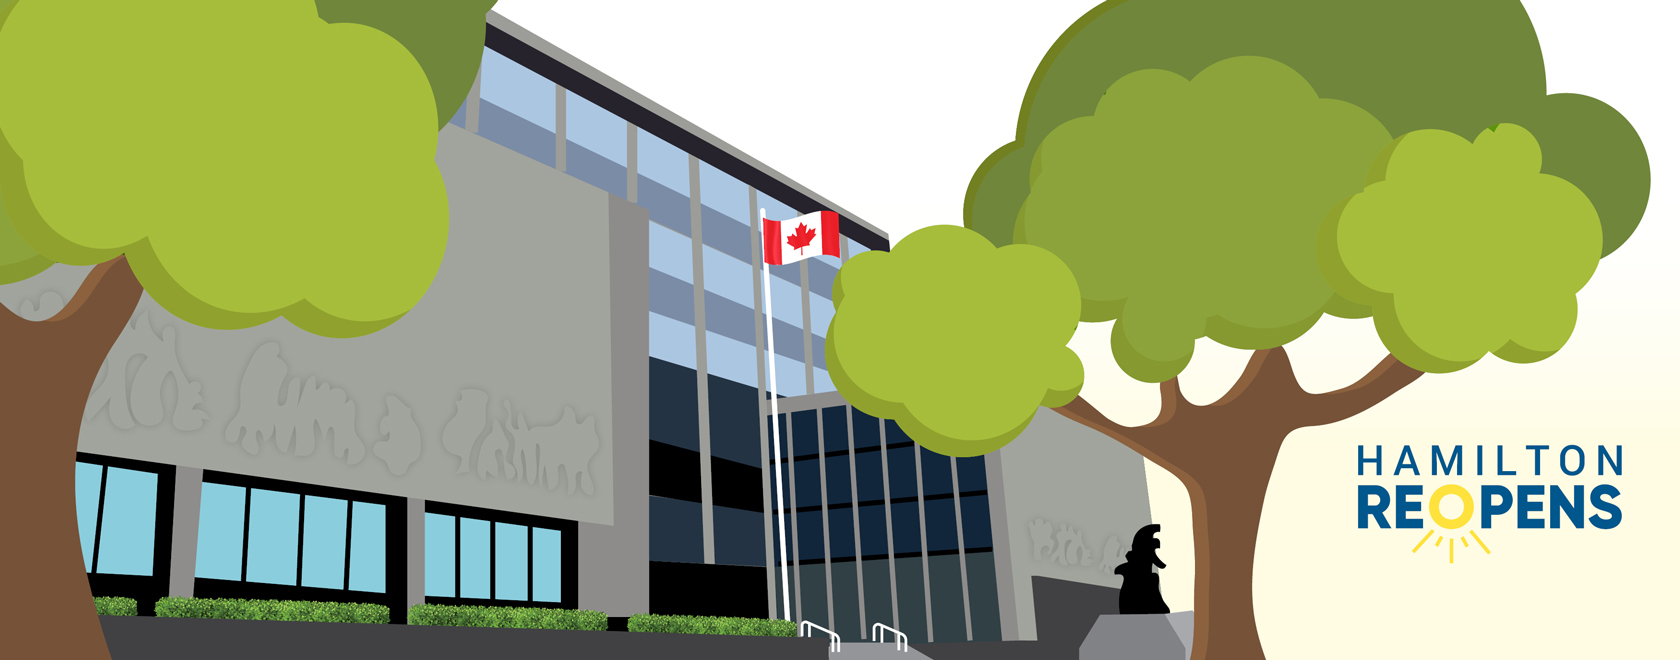 Illustration of the POA Court House Building